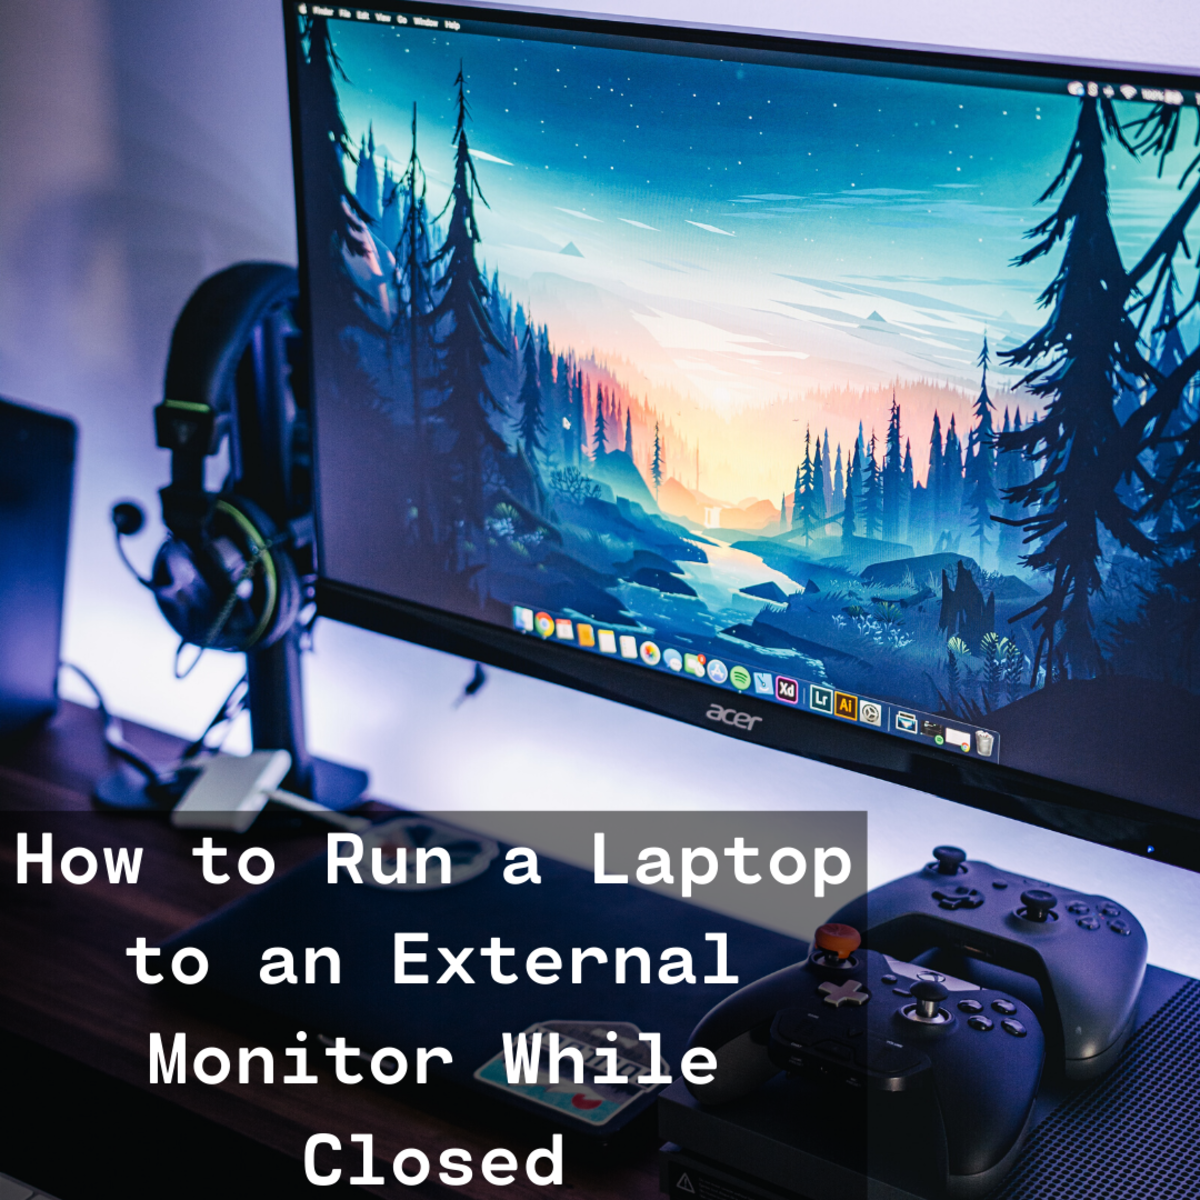 How to Use an External Monitor With a Closed Laptop